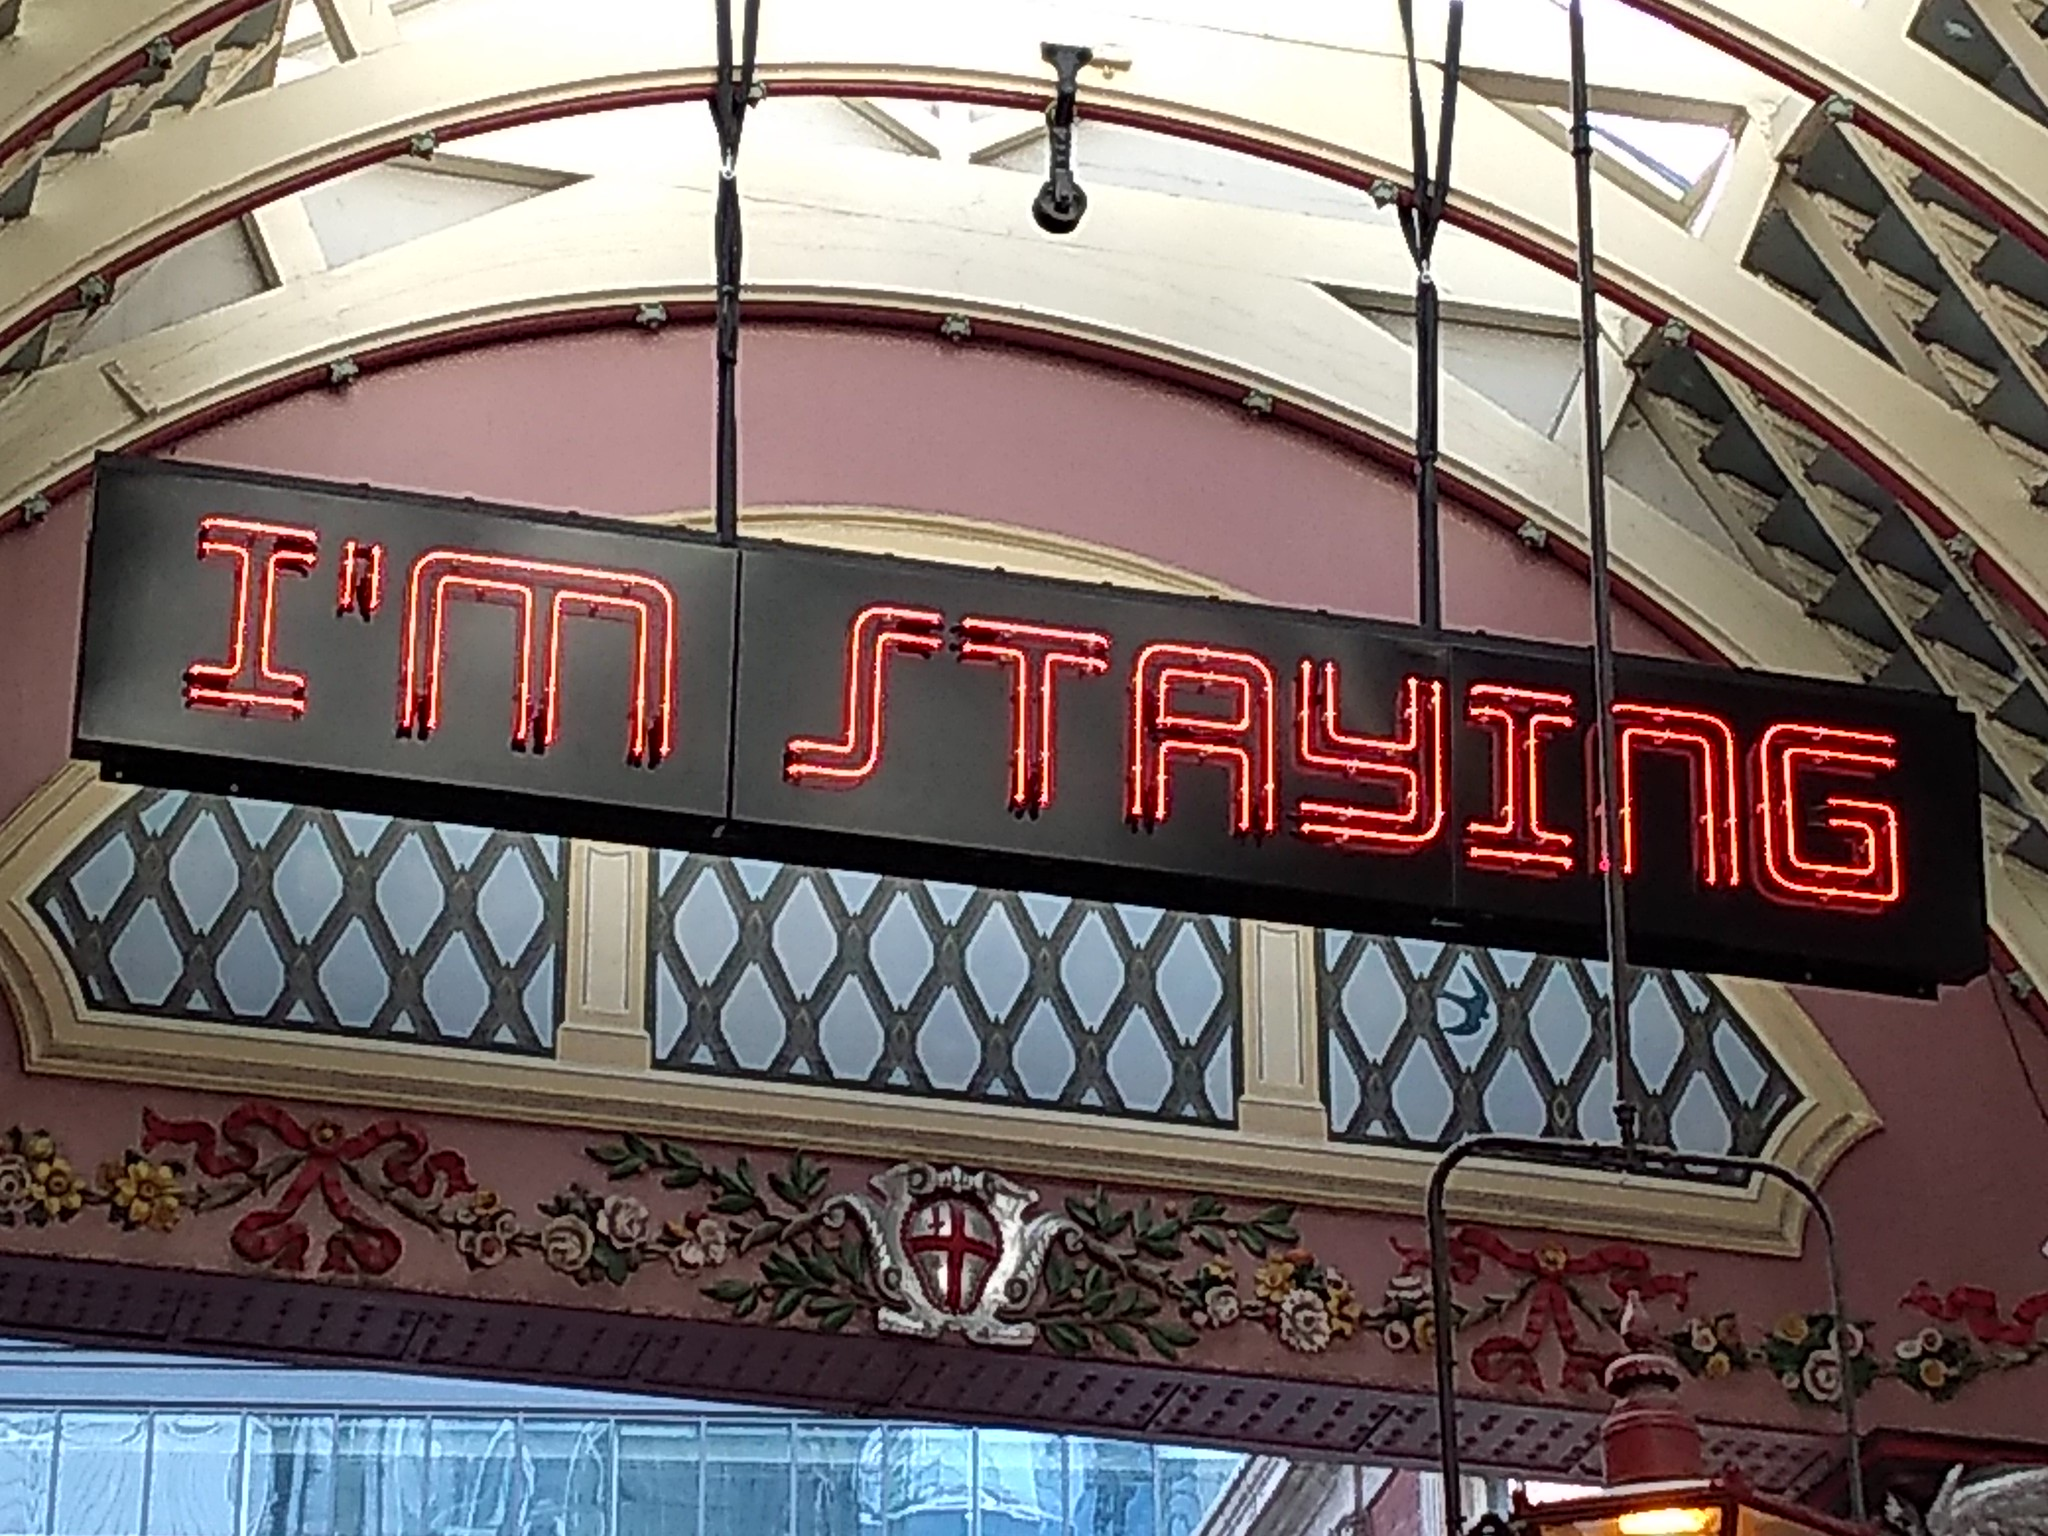 I'm Staying, by Shaun C Badham, Leadenhall Market. Photo by Terry Freedman